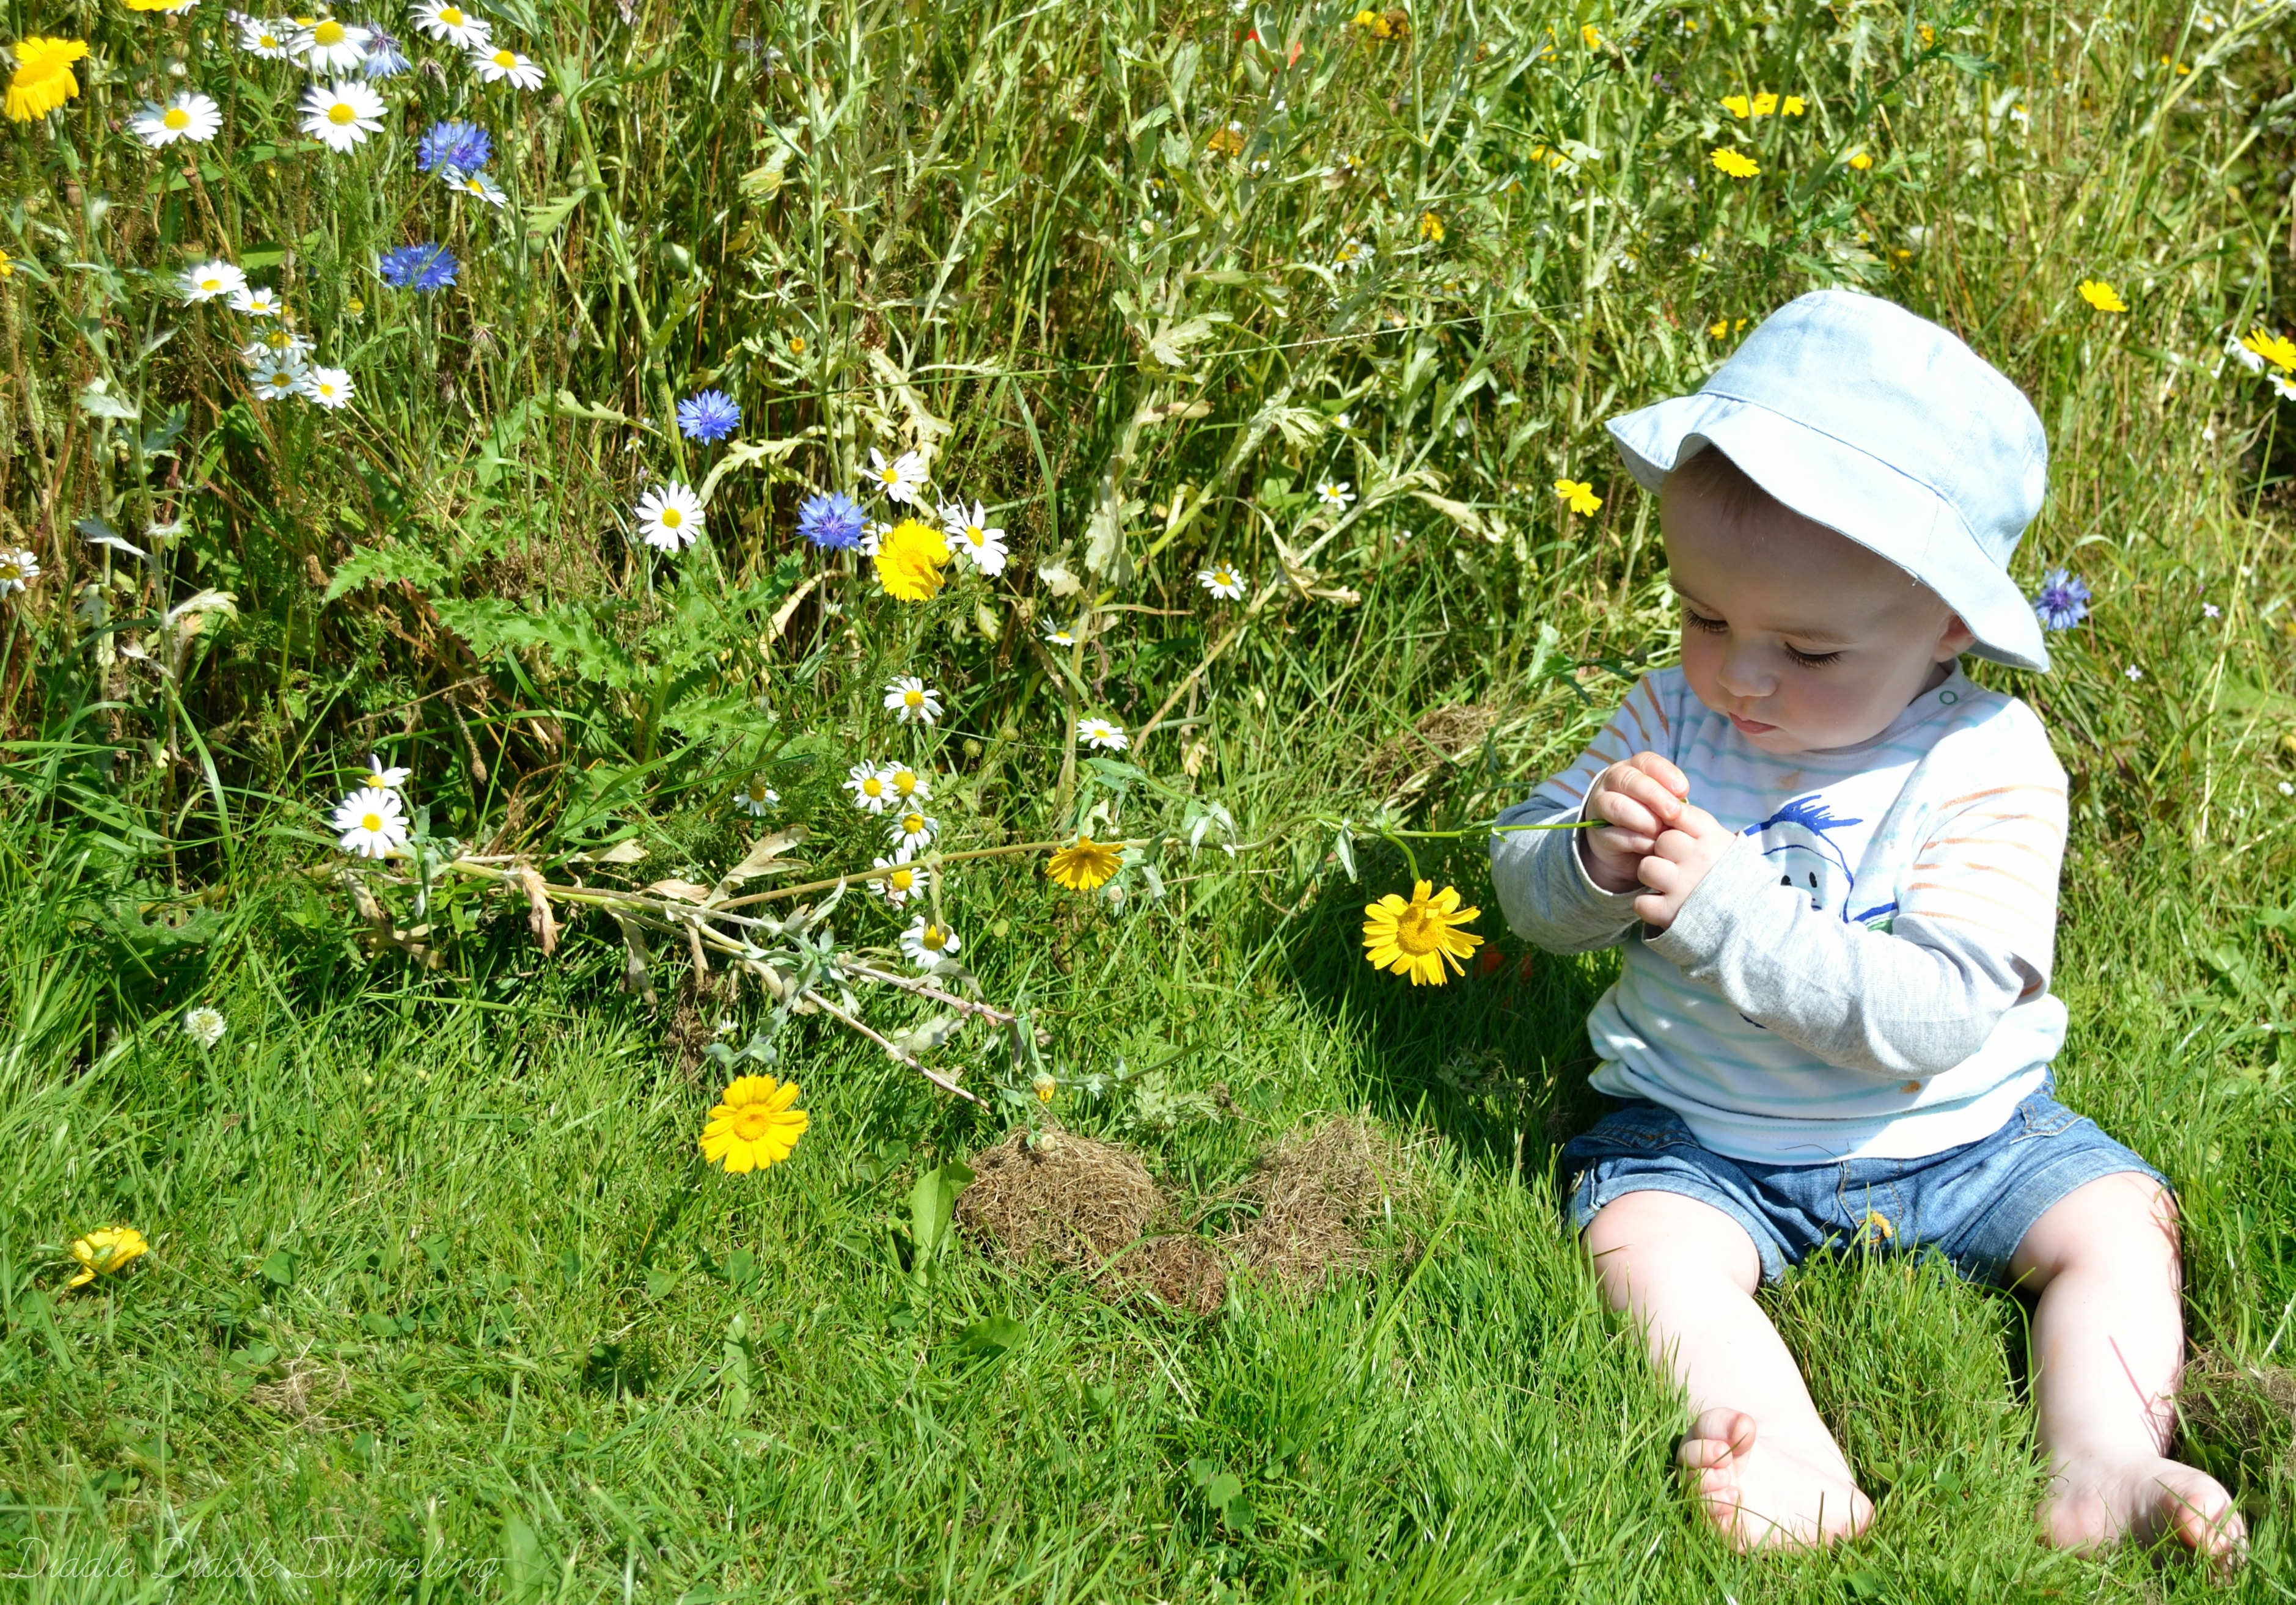 David discovering flowers at Figgate Park, Portobello.